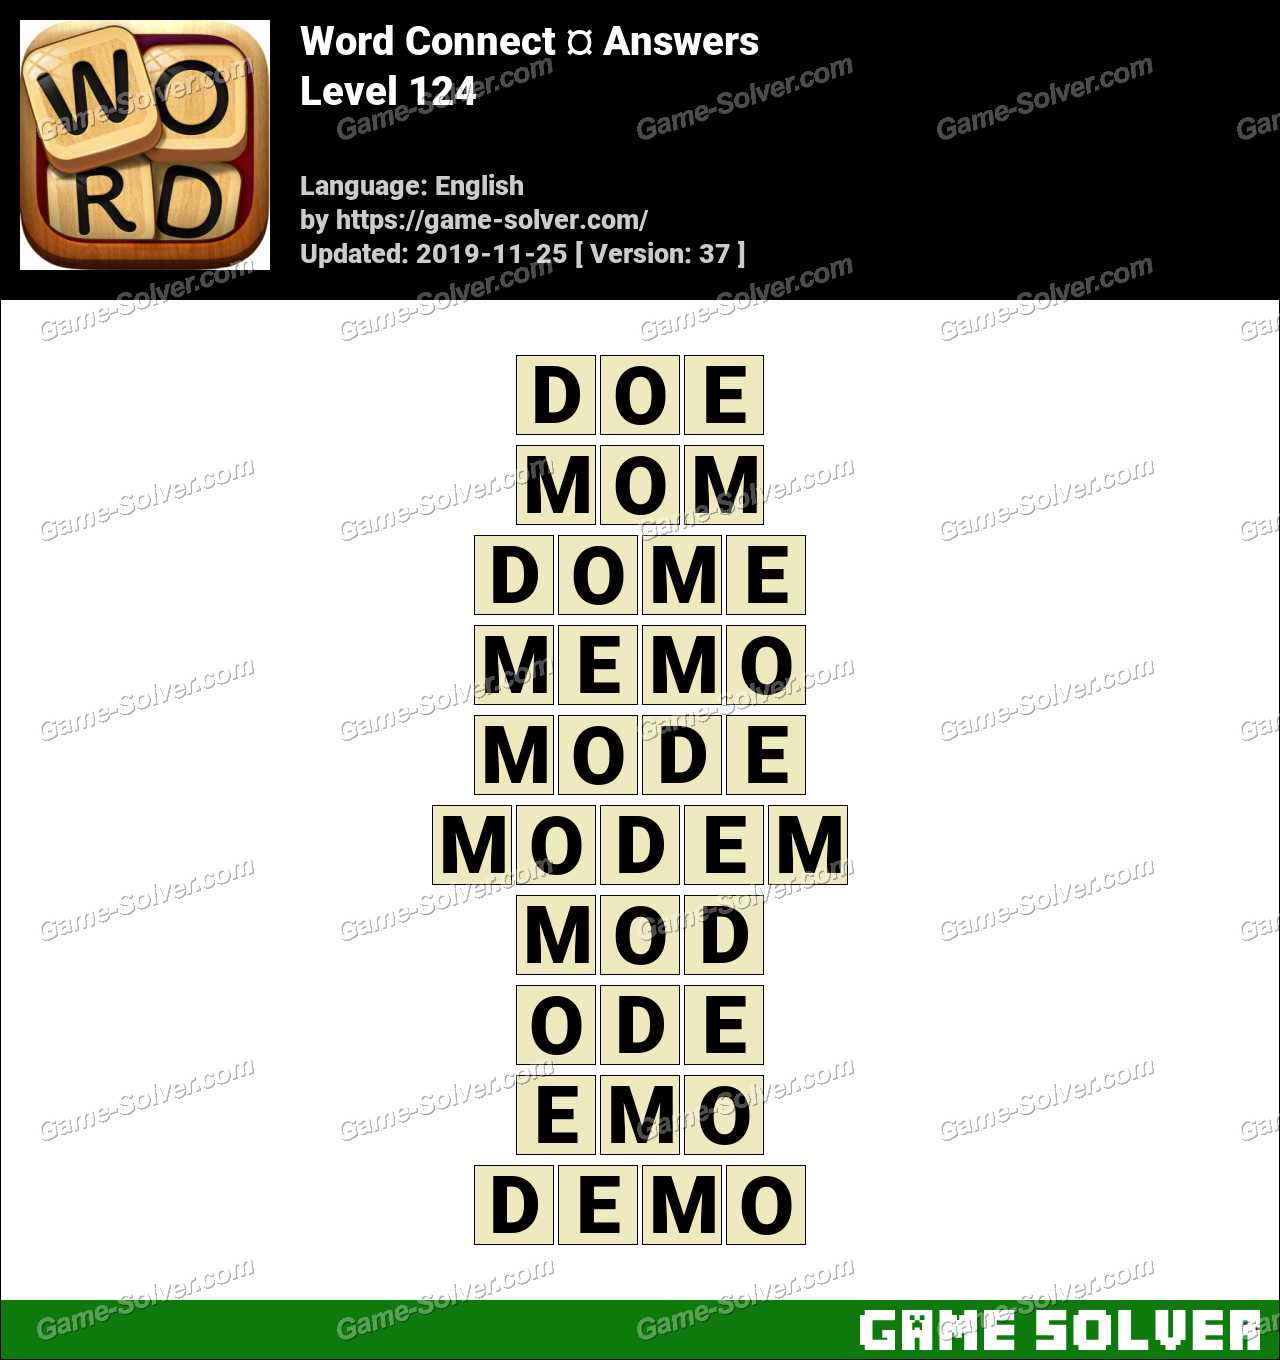 Word Connect Level 124 Answers